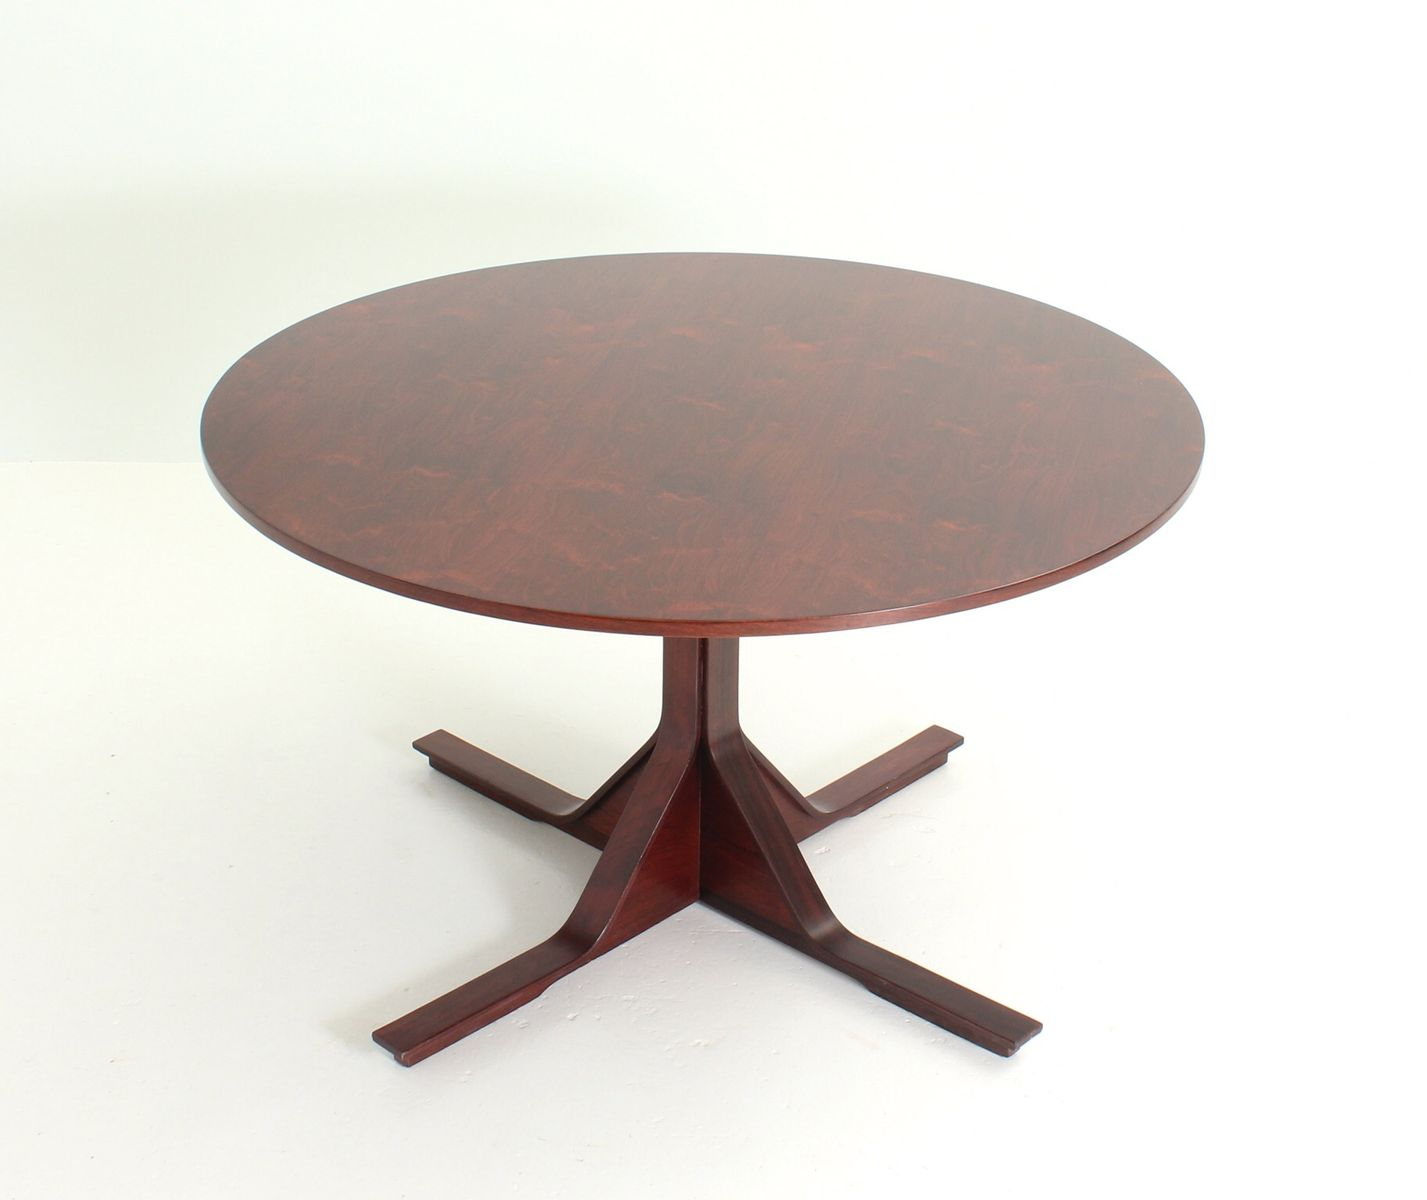 Round dining table by gianfranco frattini for bernini for Round table 99 rosenheim